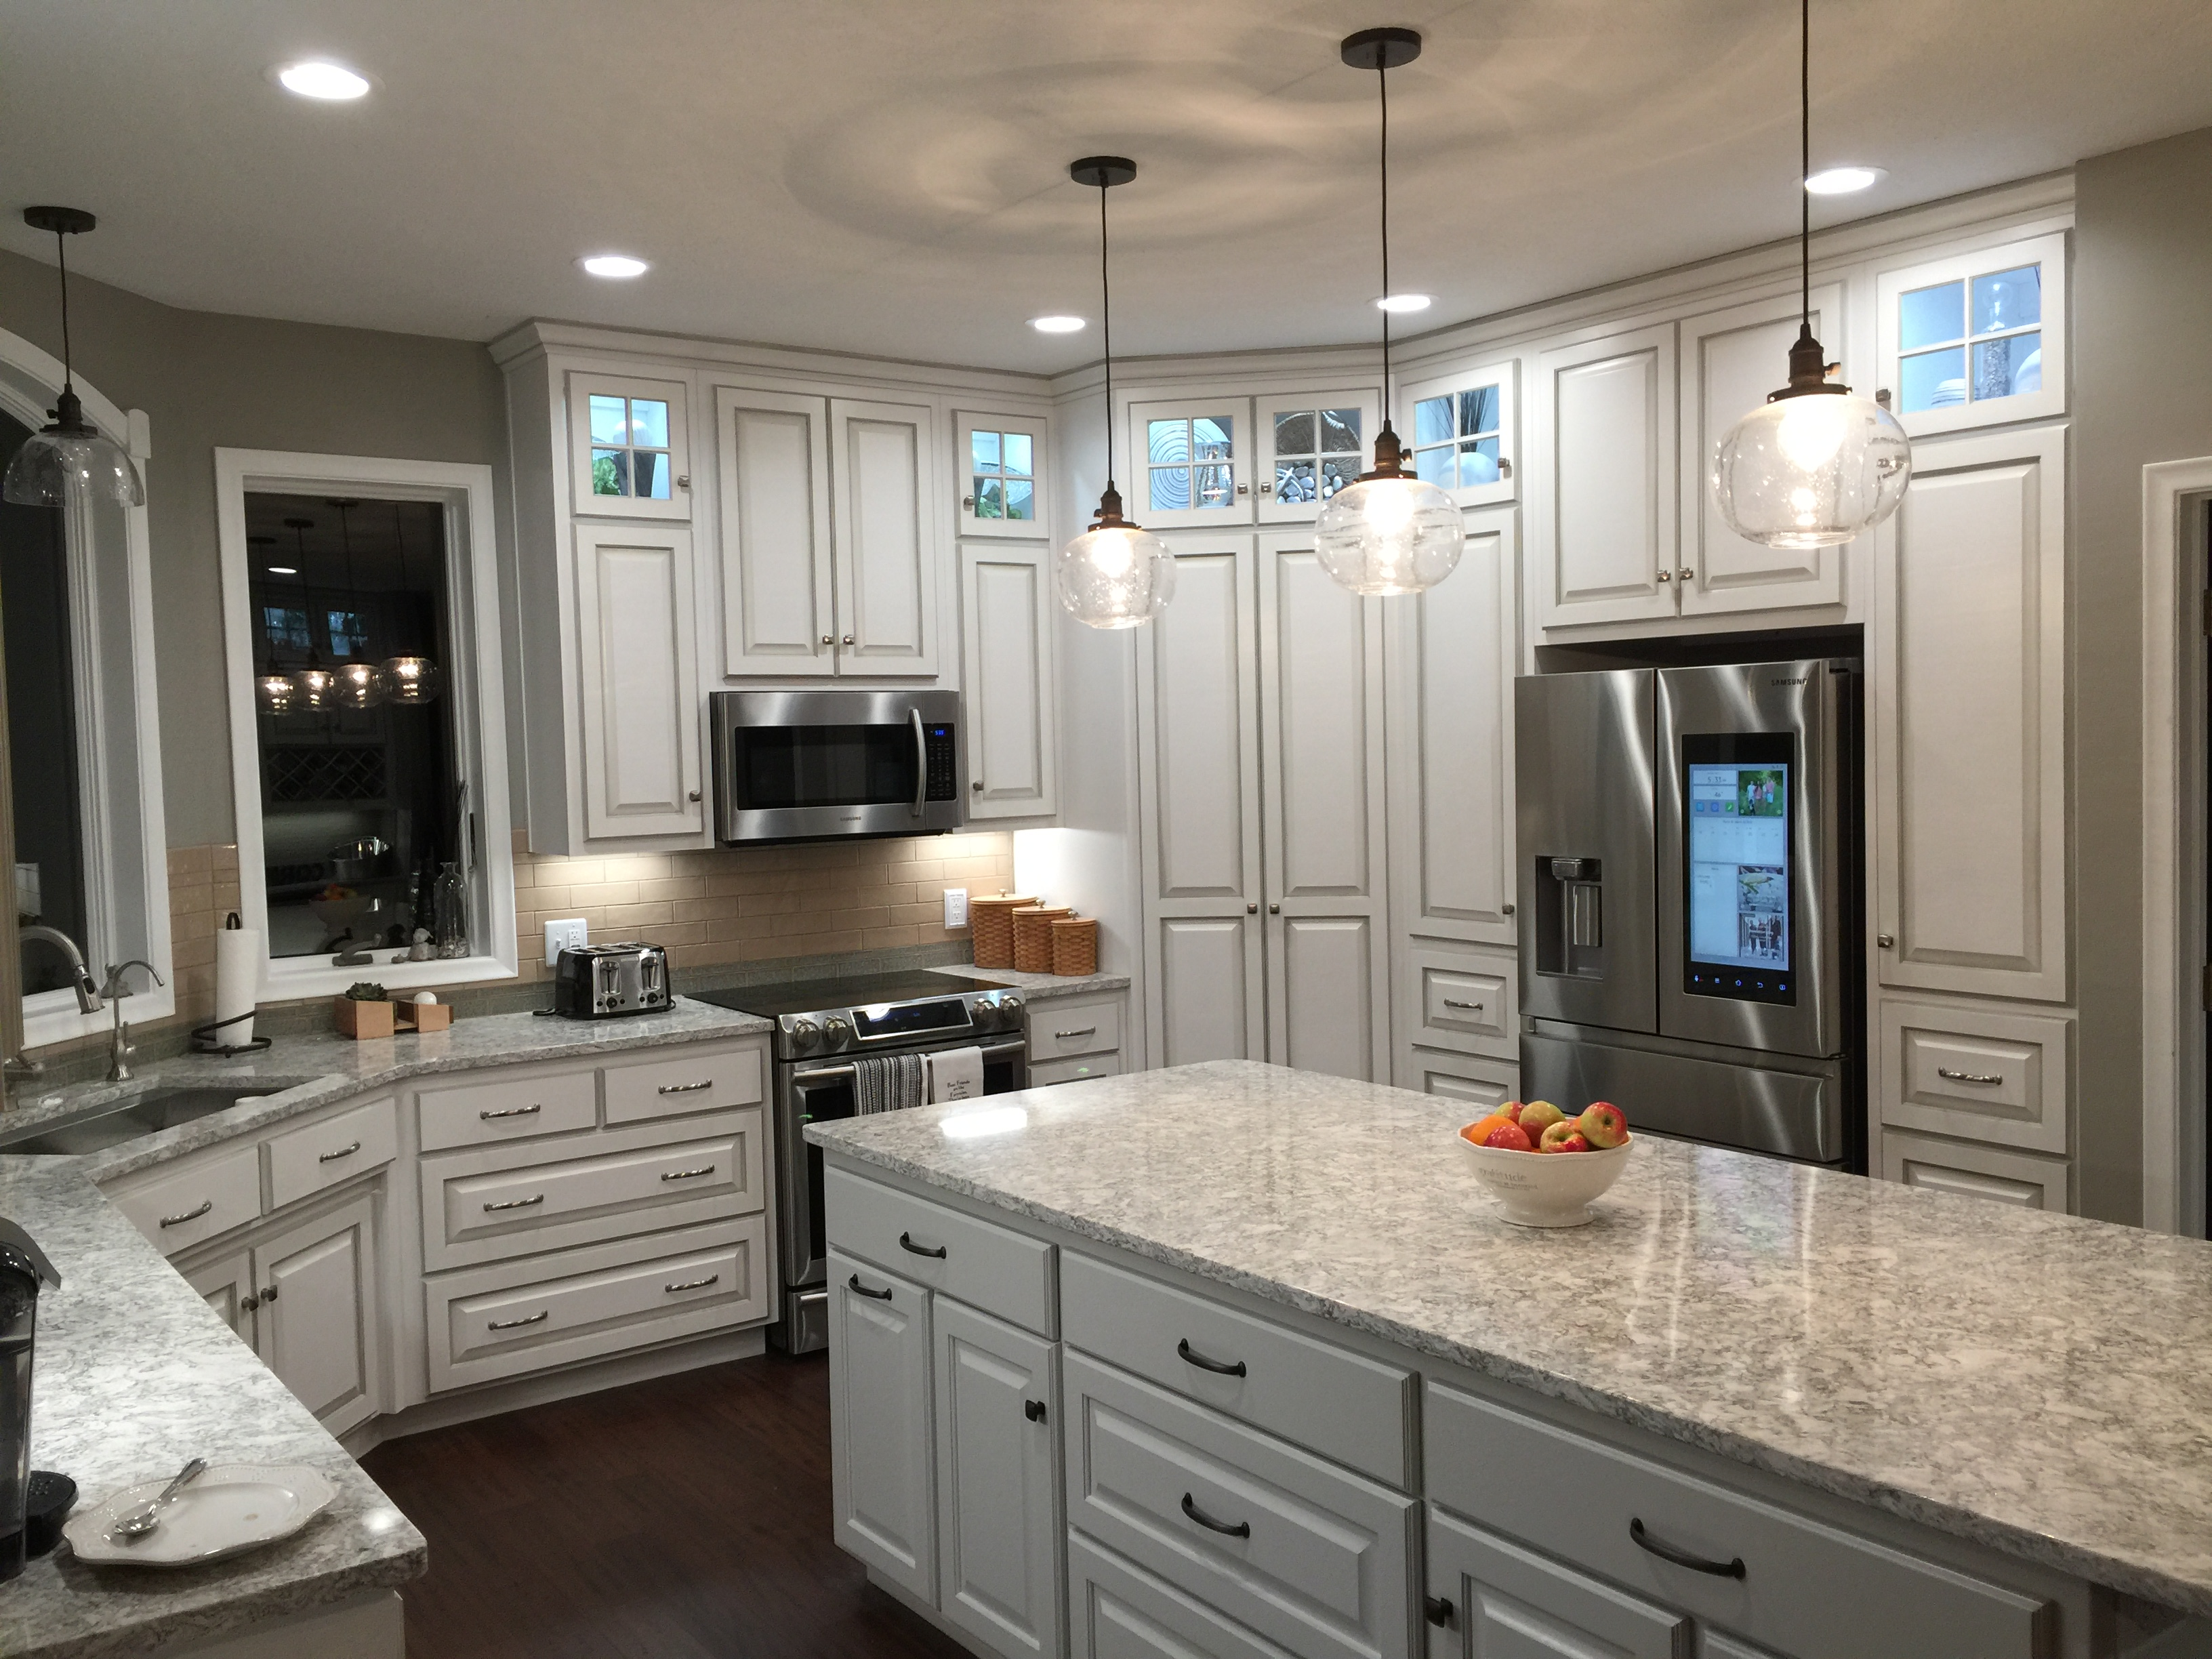 White Painted with Glaze Kitchen